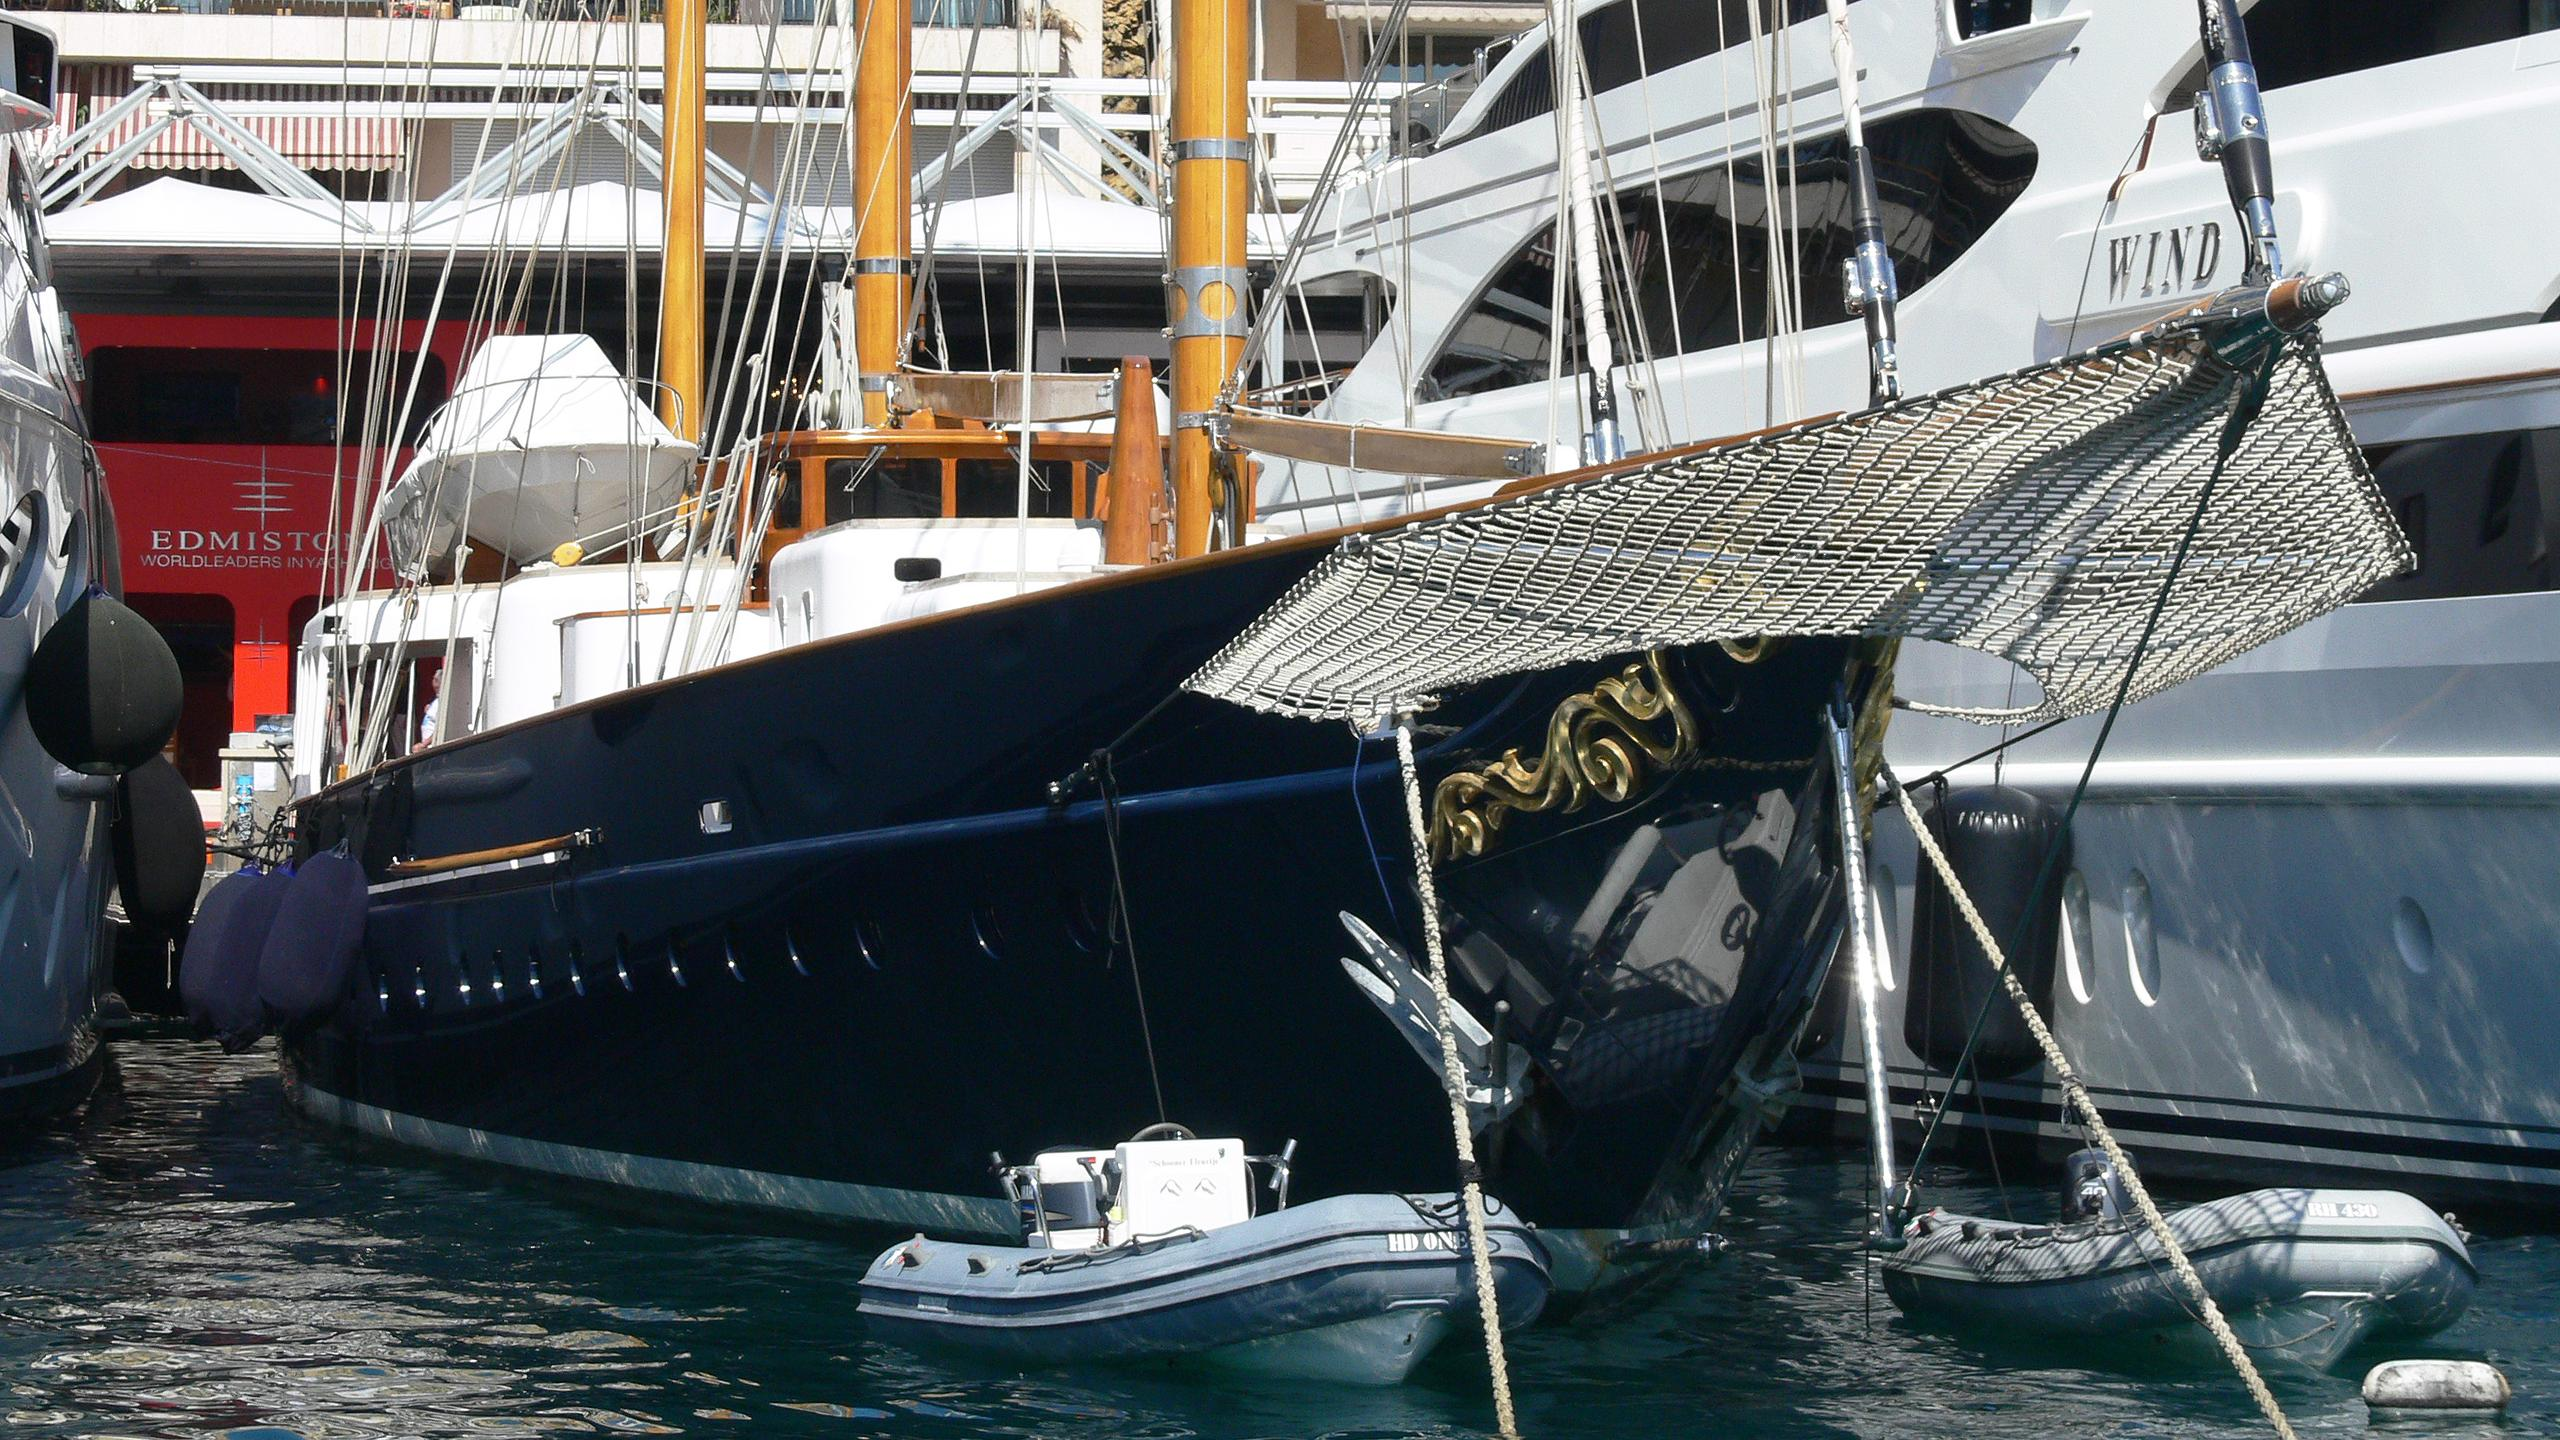 fleurtje-sailing-yacht-de-vries-lentsch-1960-57m-bow-before-refit